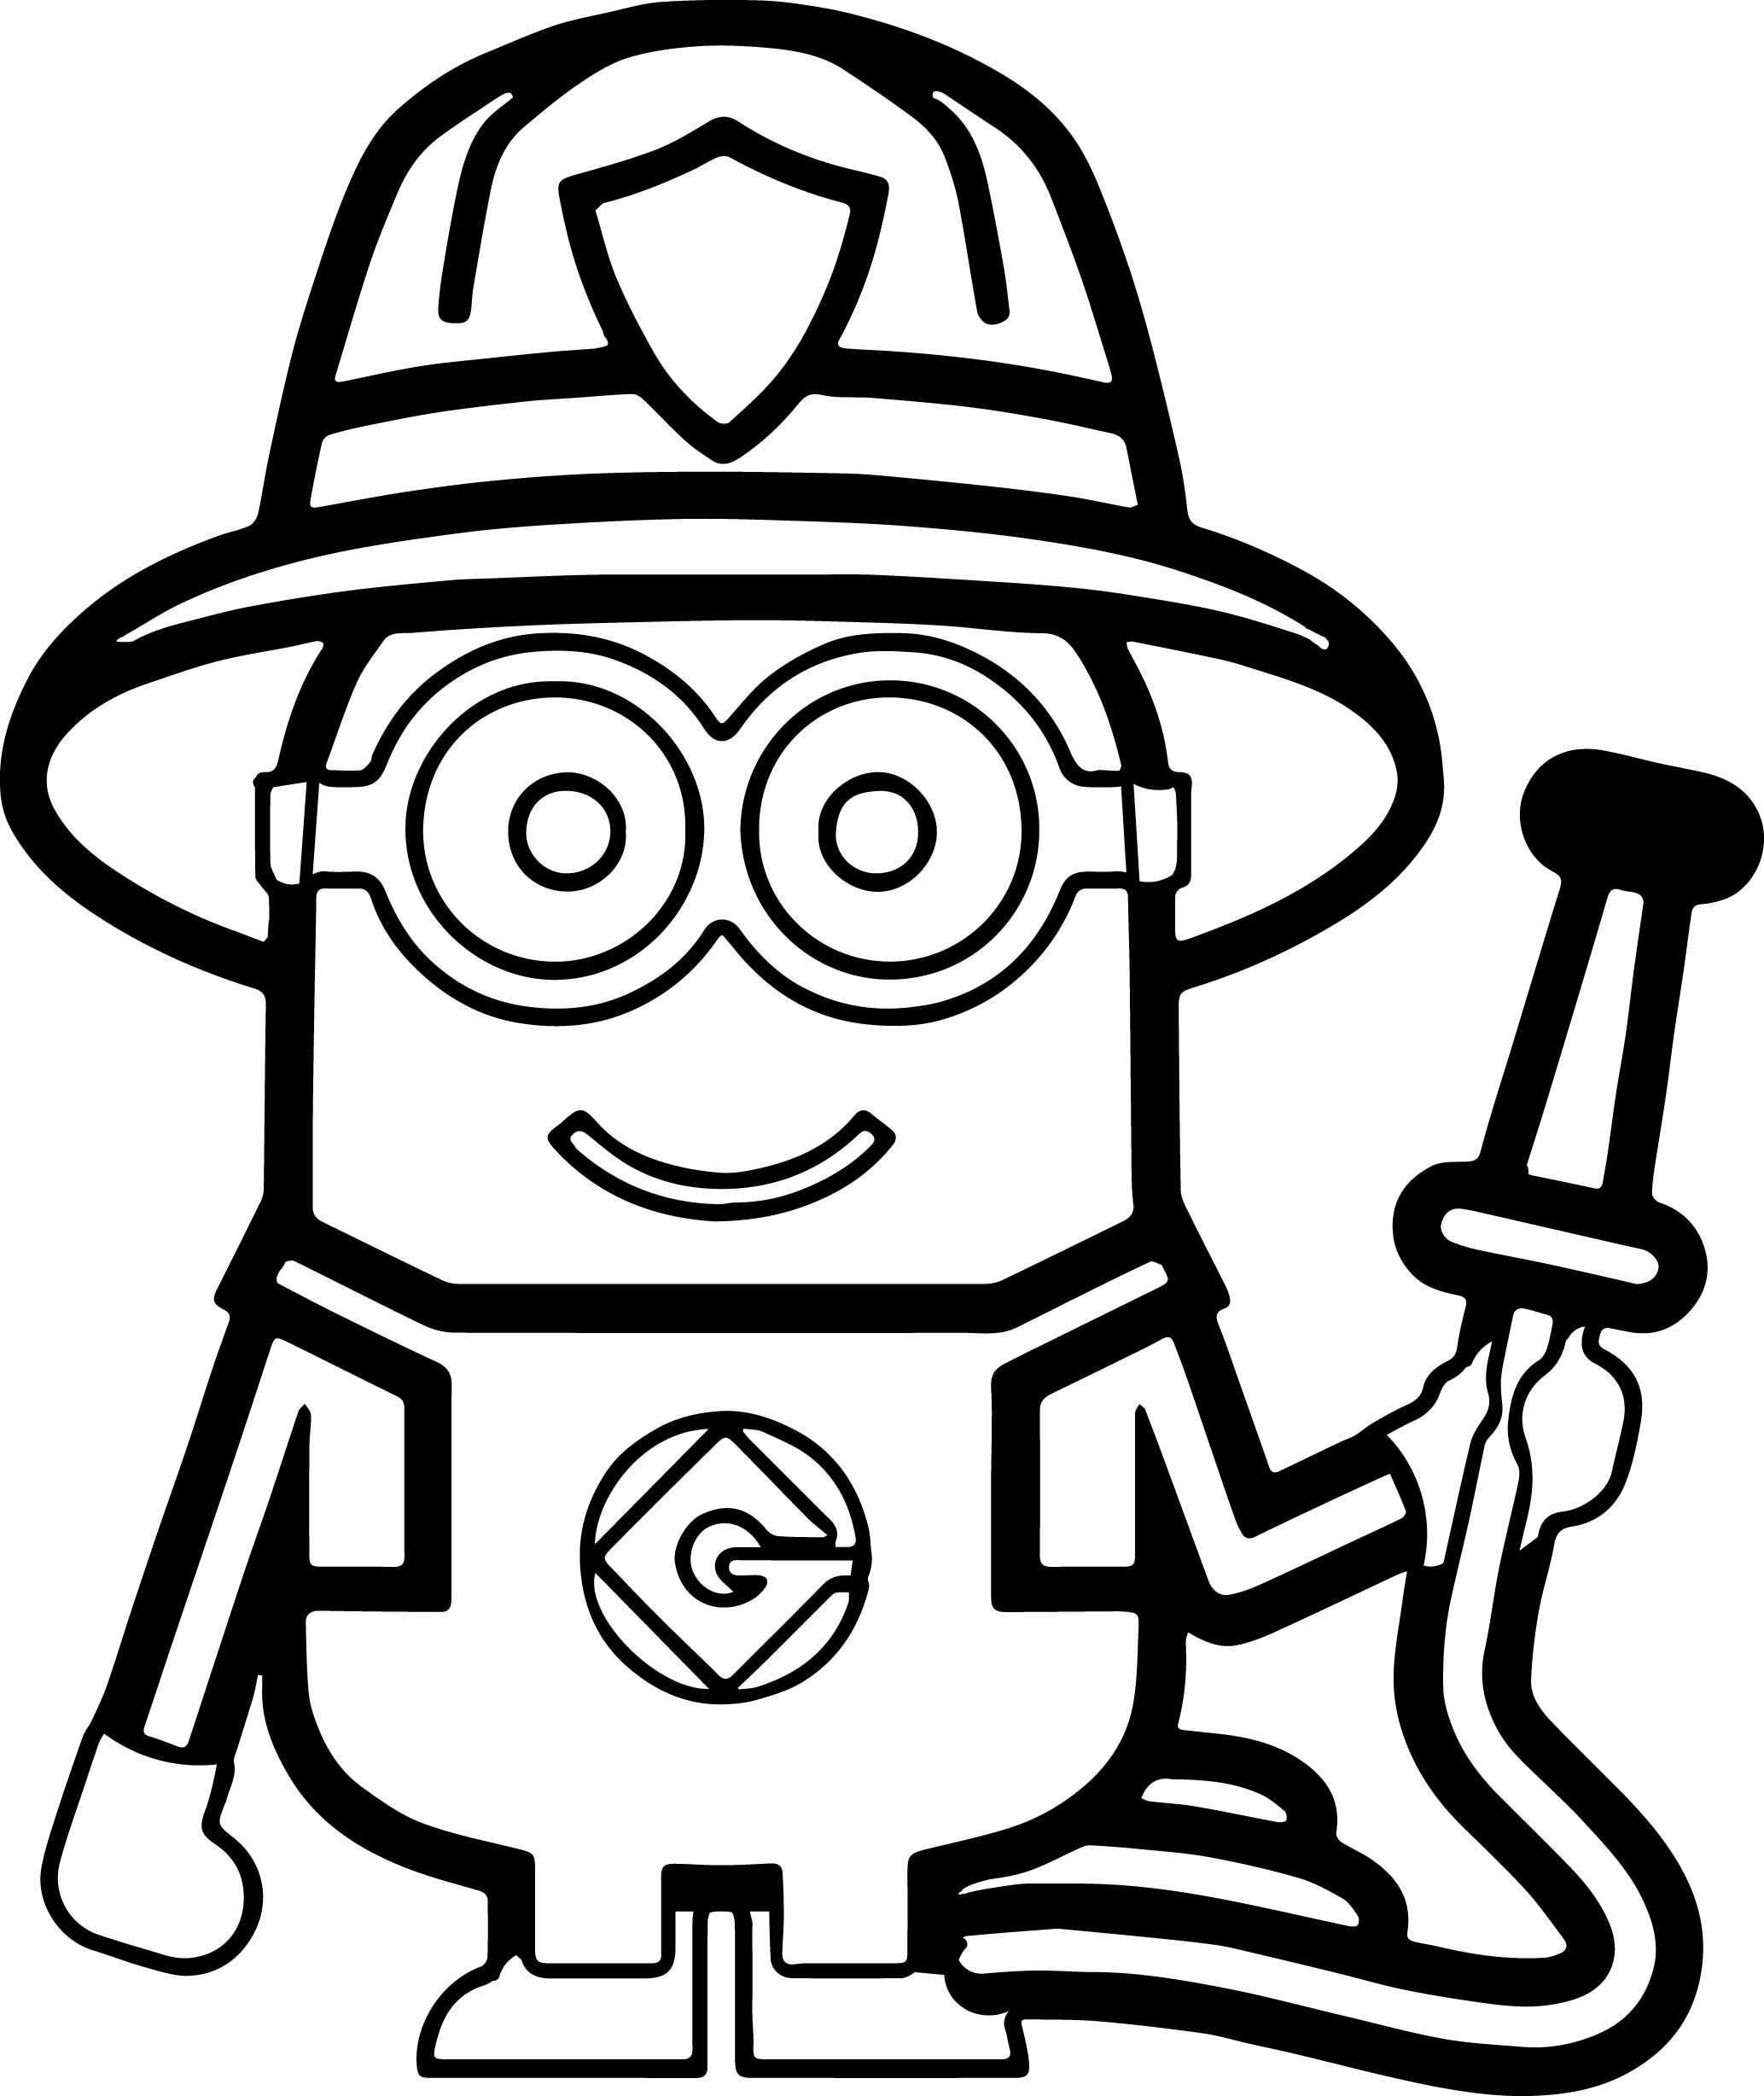 Minions Fireman Coloring PageMore Pins Like This One At FOSTERGINGER Pinterest